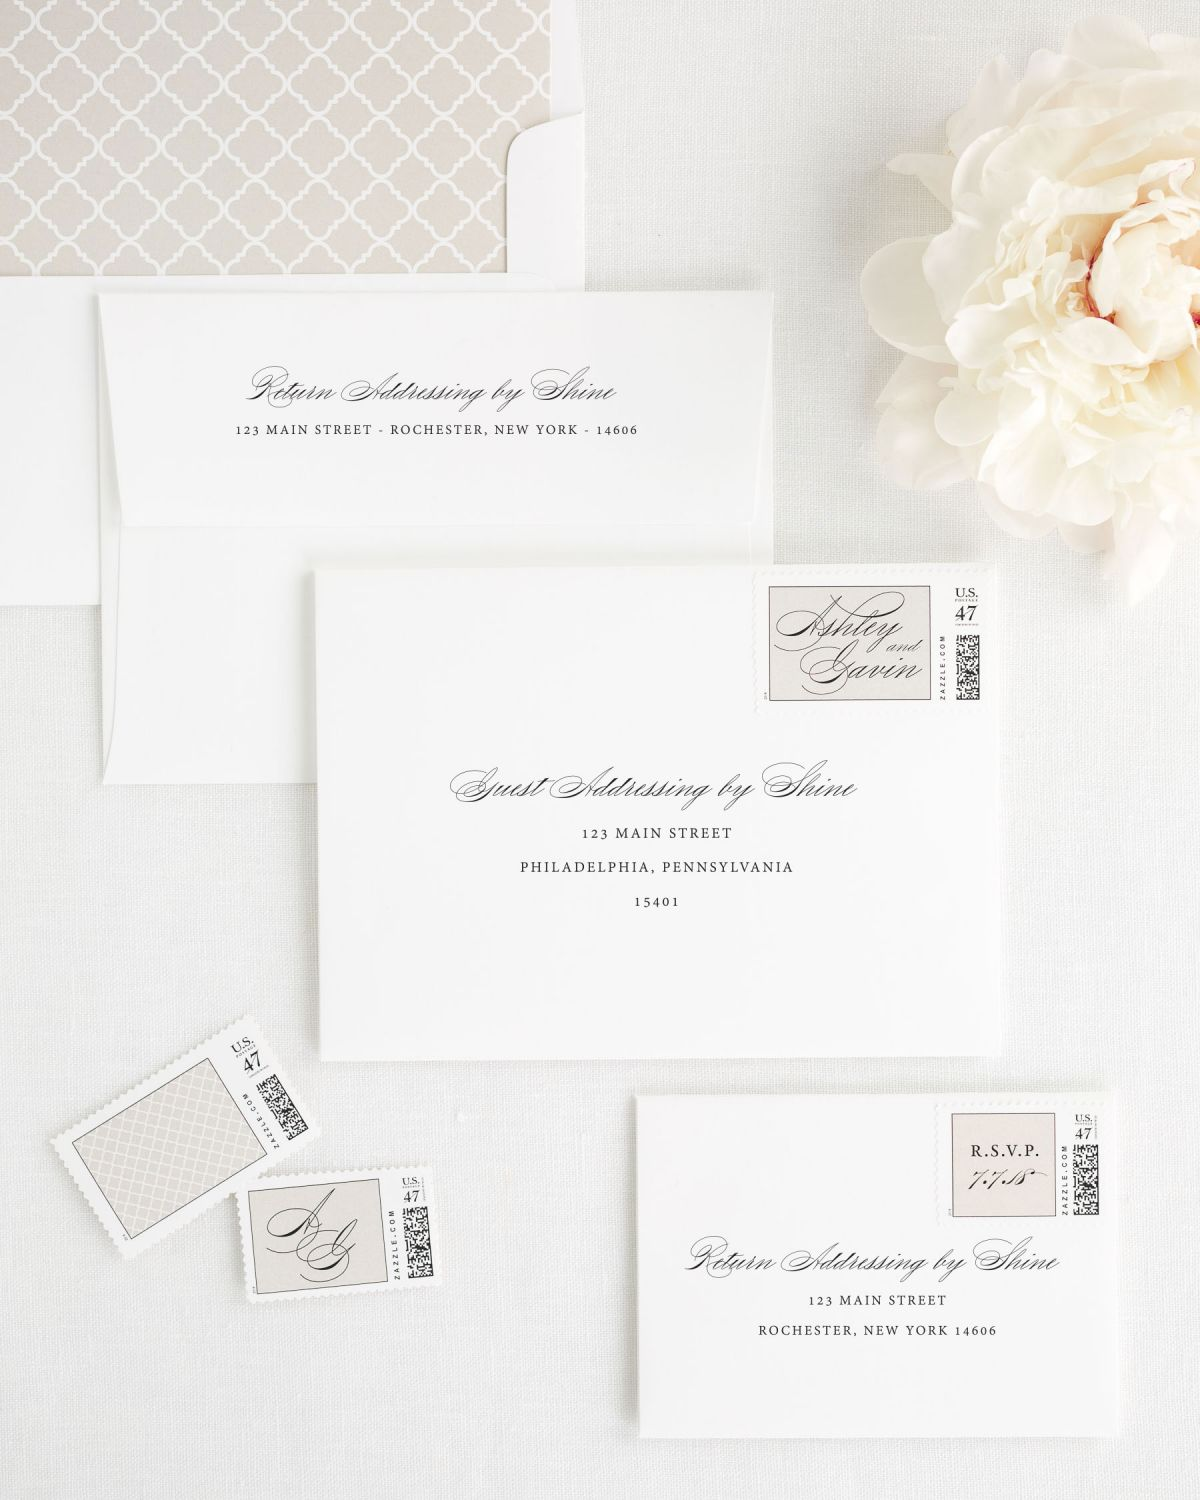 wedding invitation envelopes with custom stamps and trellis pattern liner